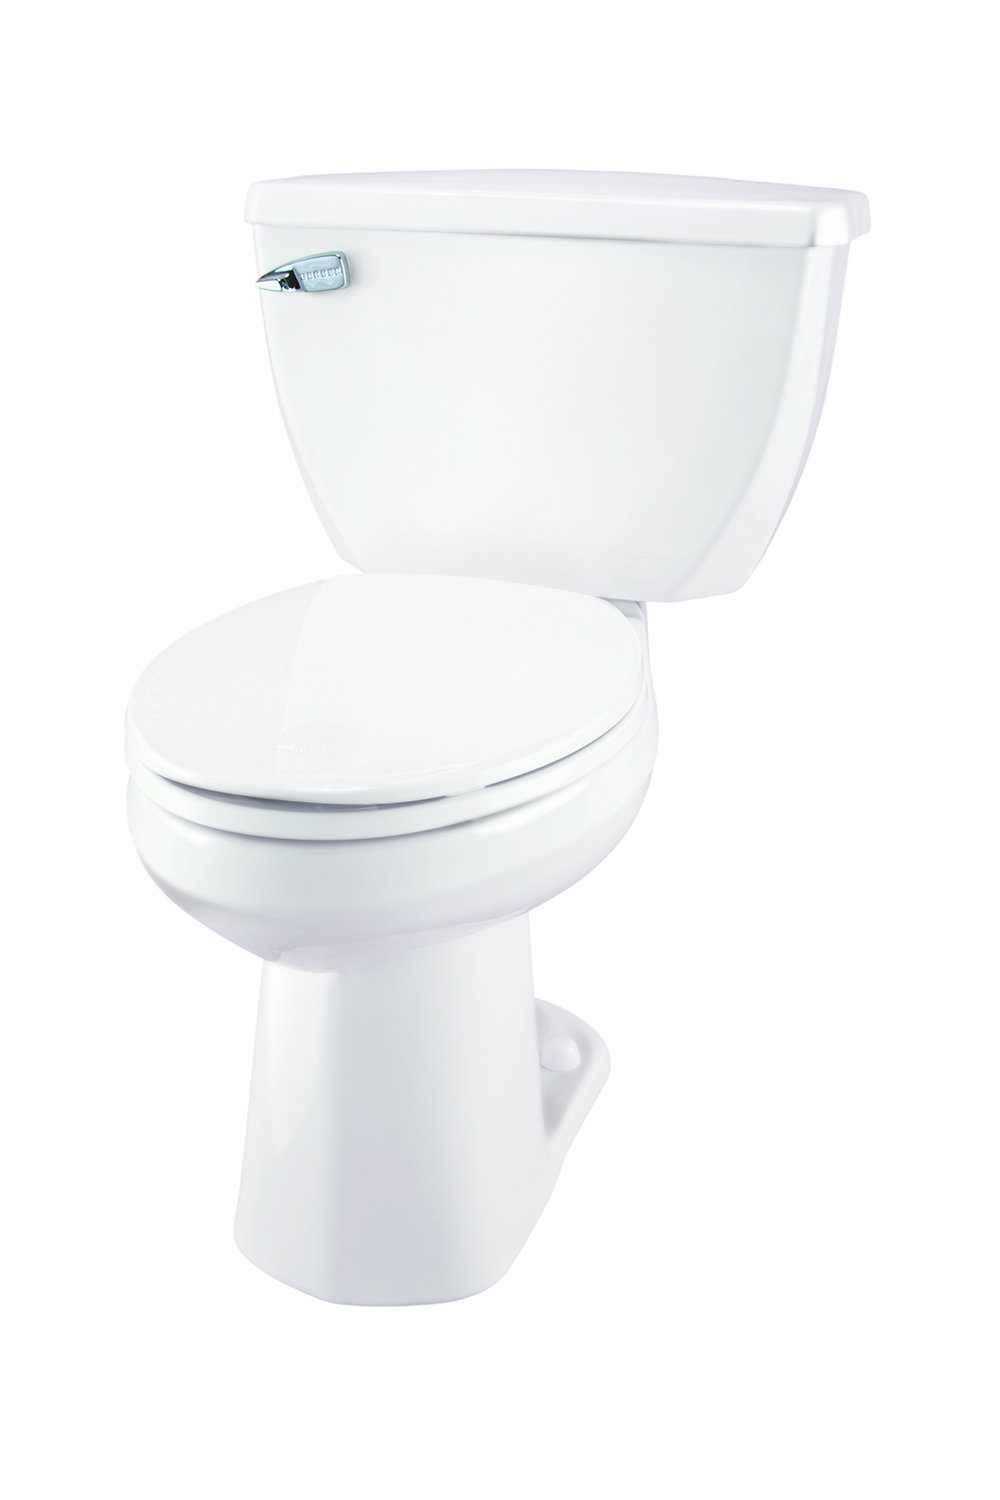 Gerber 16 Gpf Toilet Seat.Ultra Flush 1 6 Gpf 12 Rough In Two Piece Elongated Ergoheight